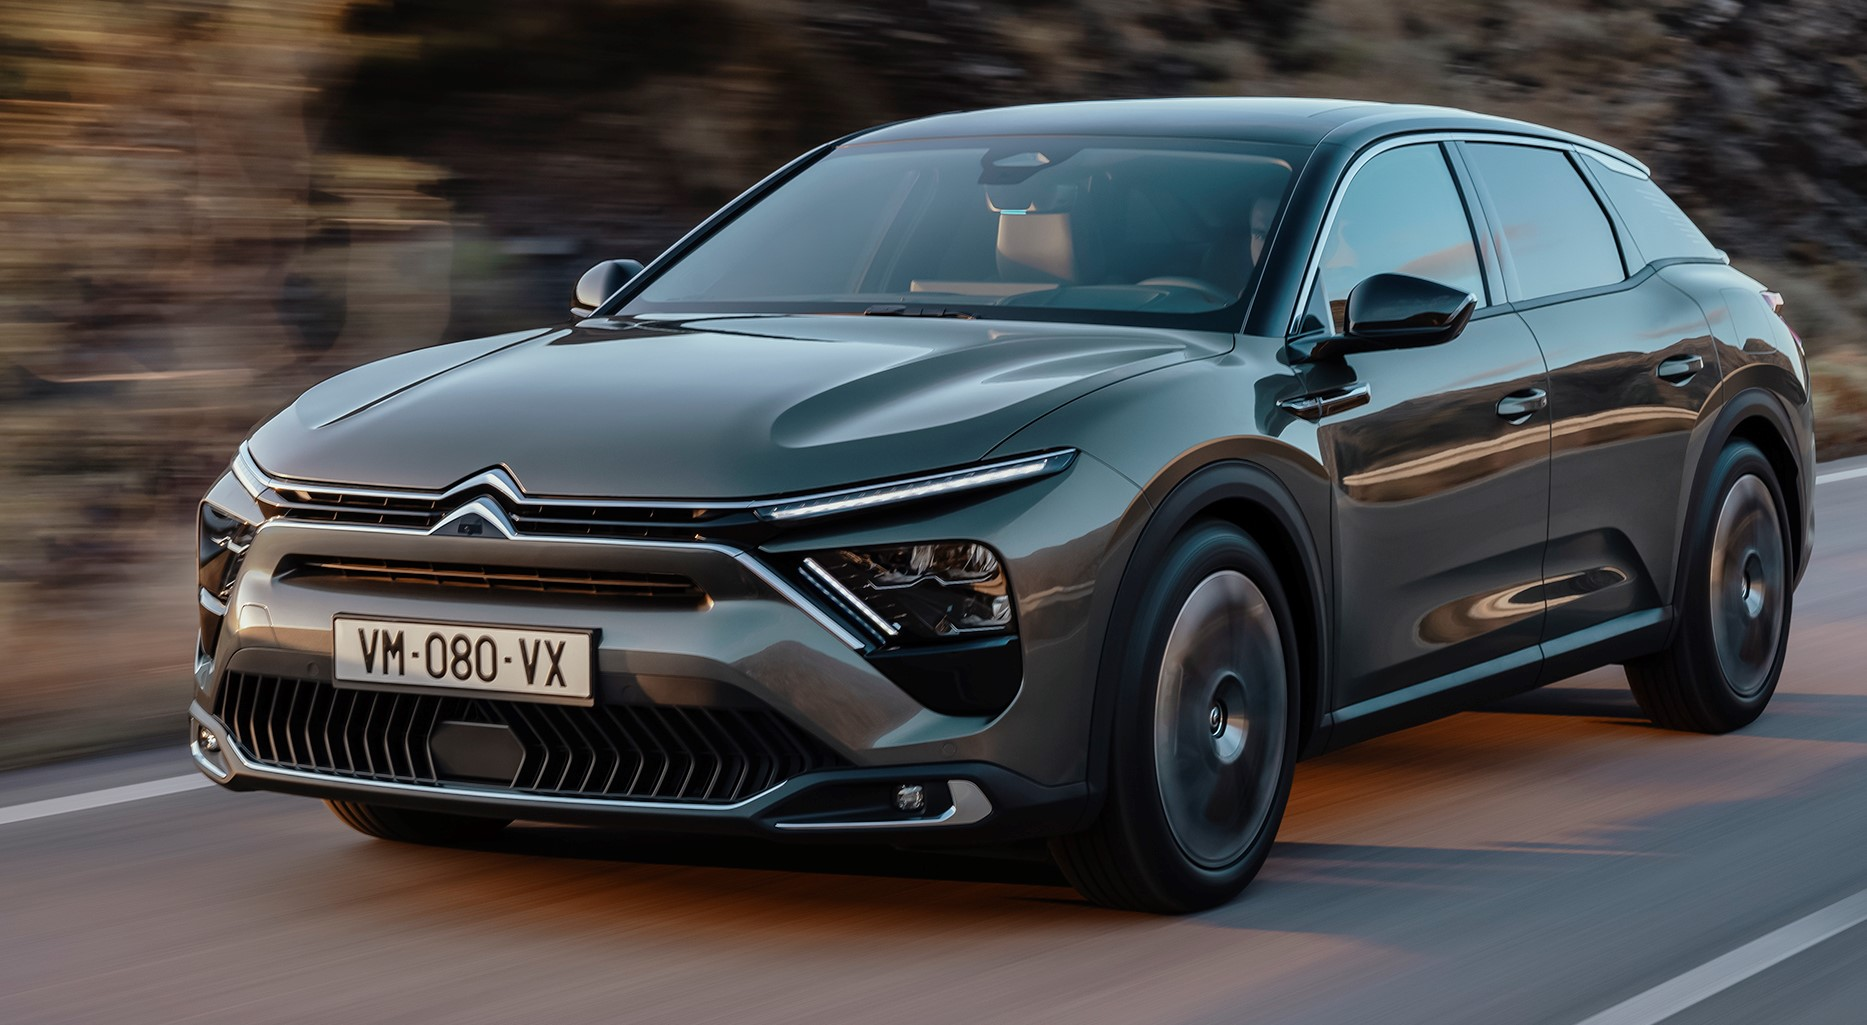 The new Citroen C5 X is unveiled